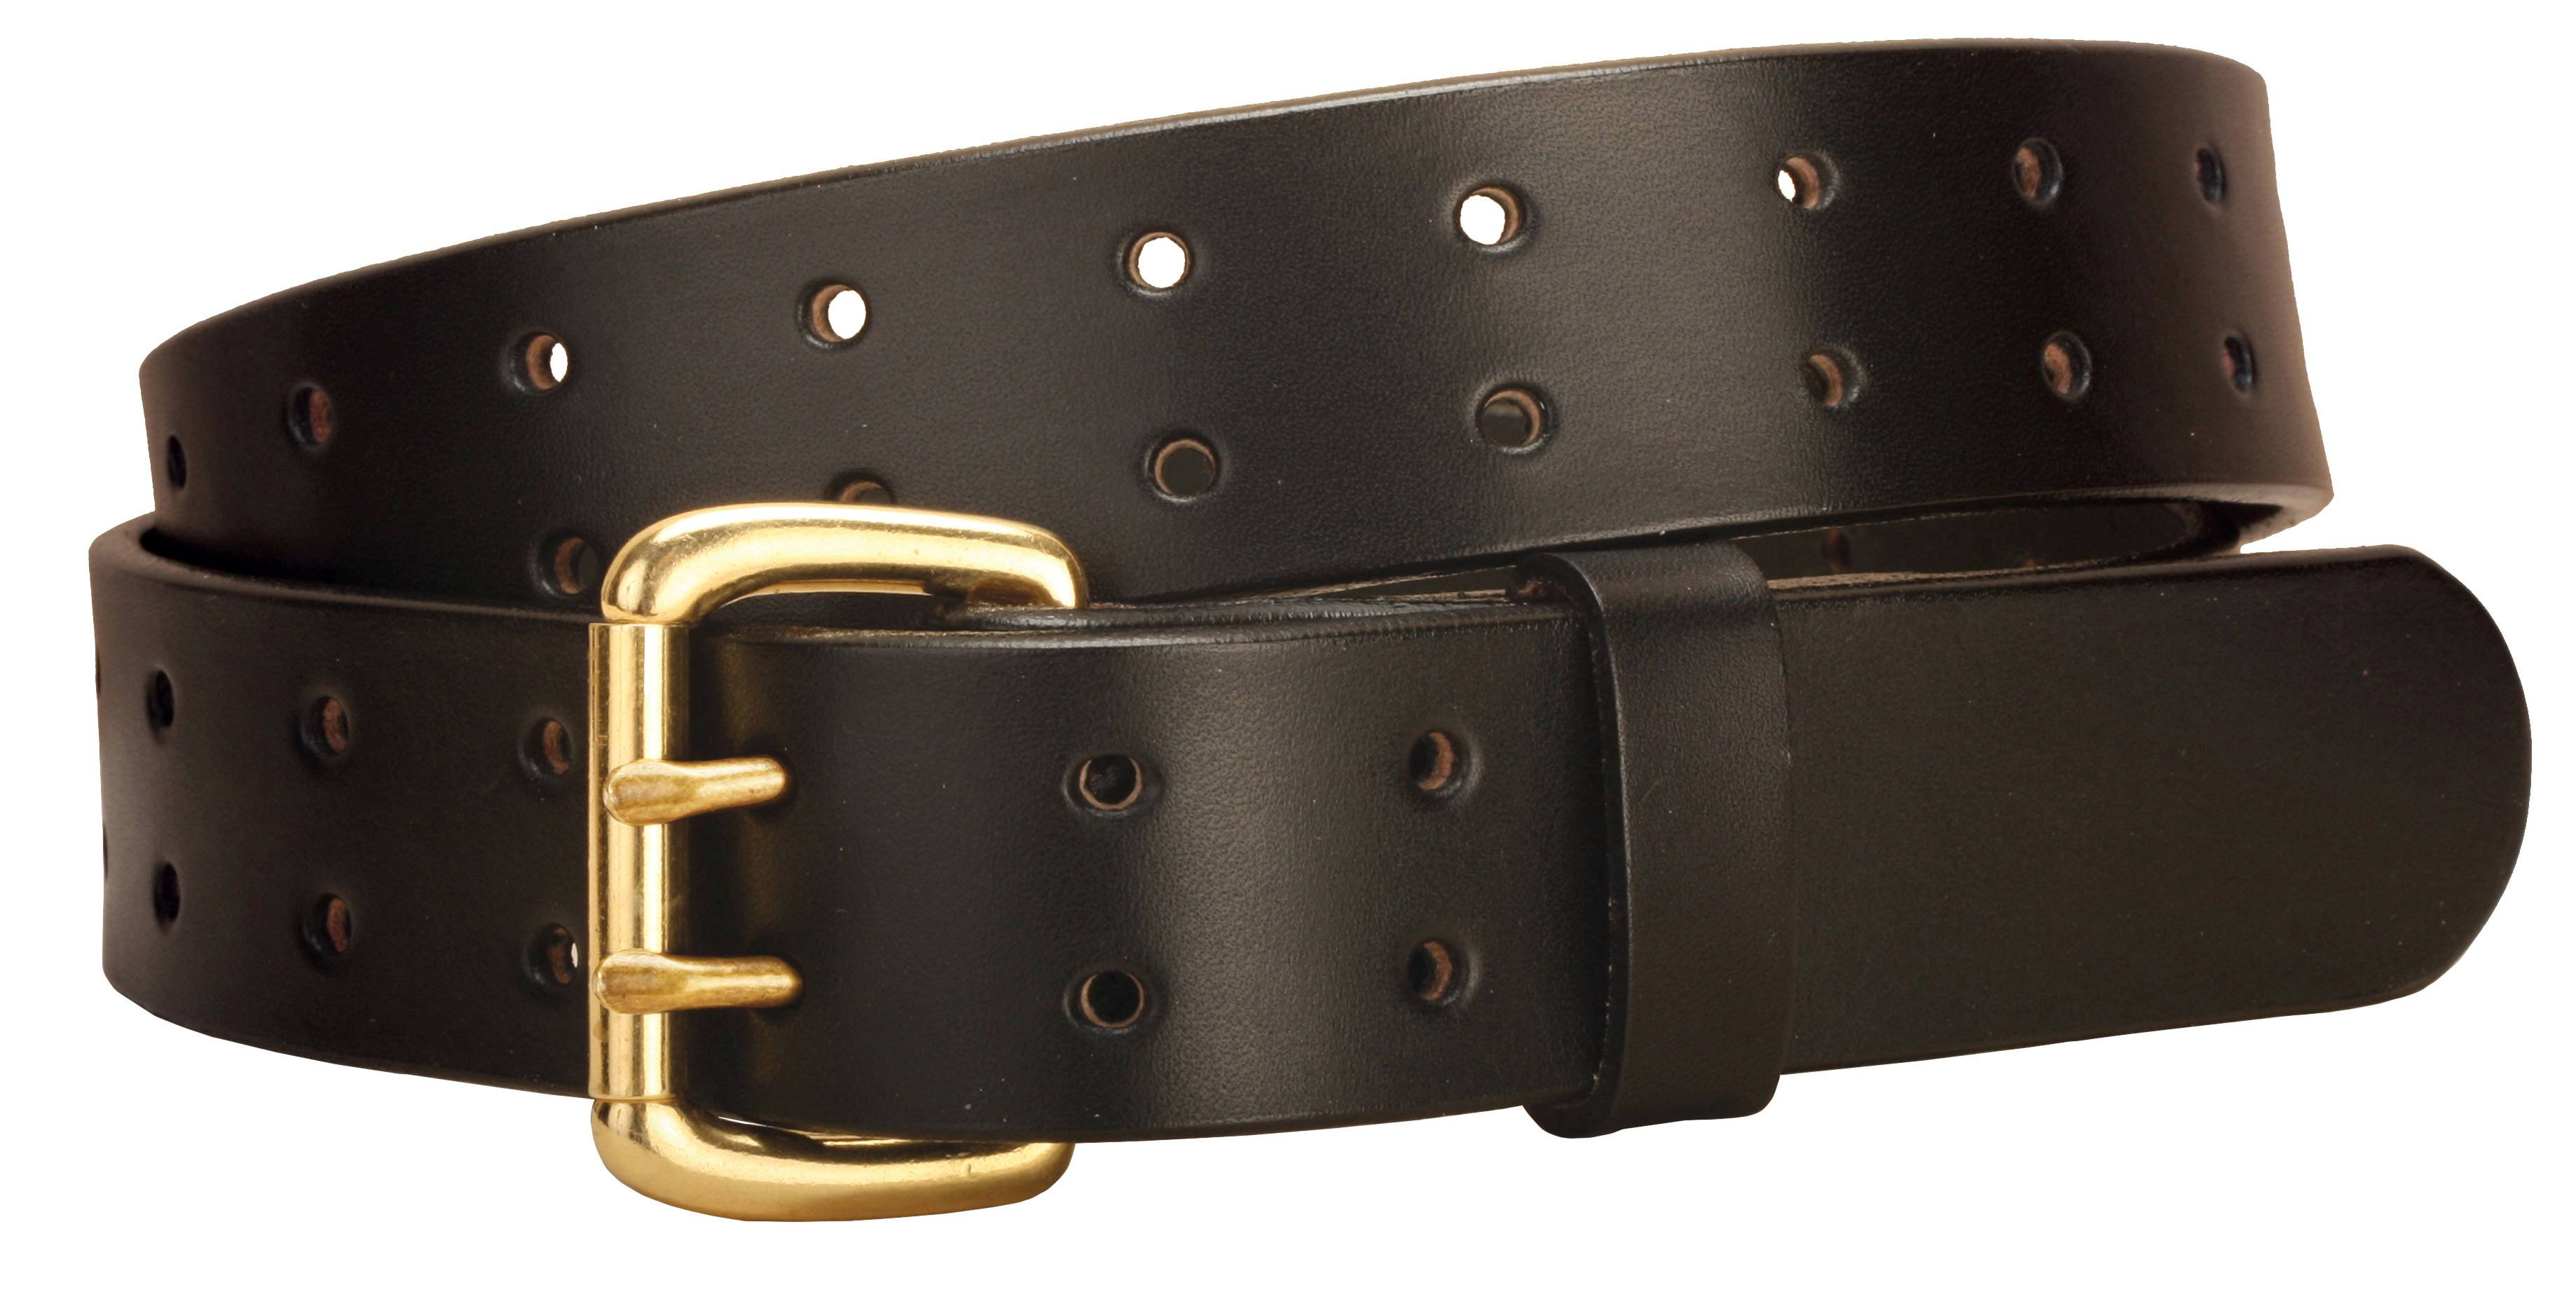 Tory Leather Double Tongue Leather Belt with Double Holes